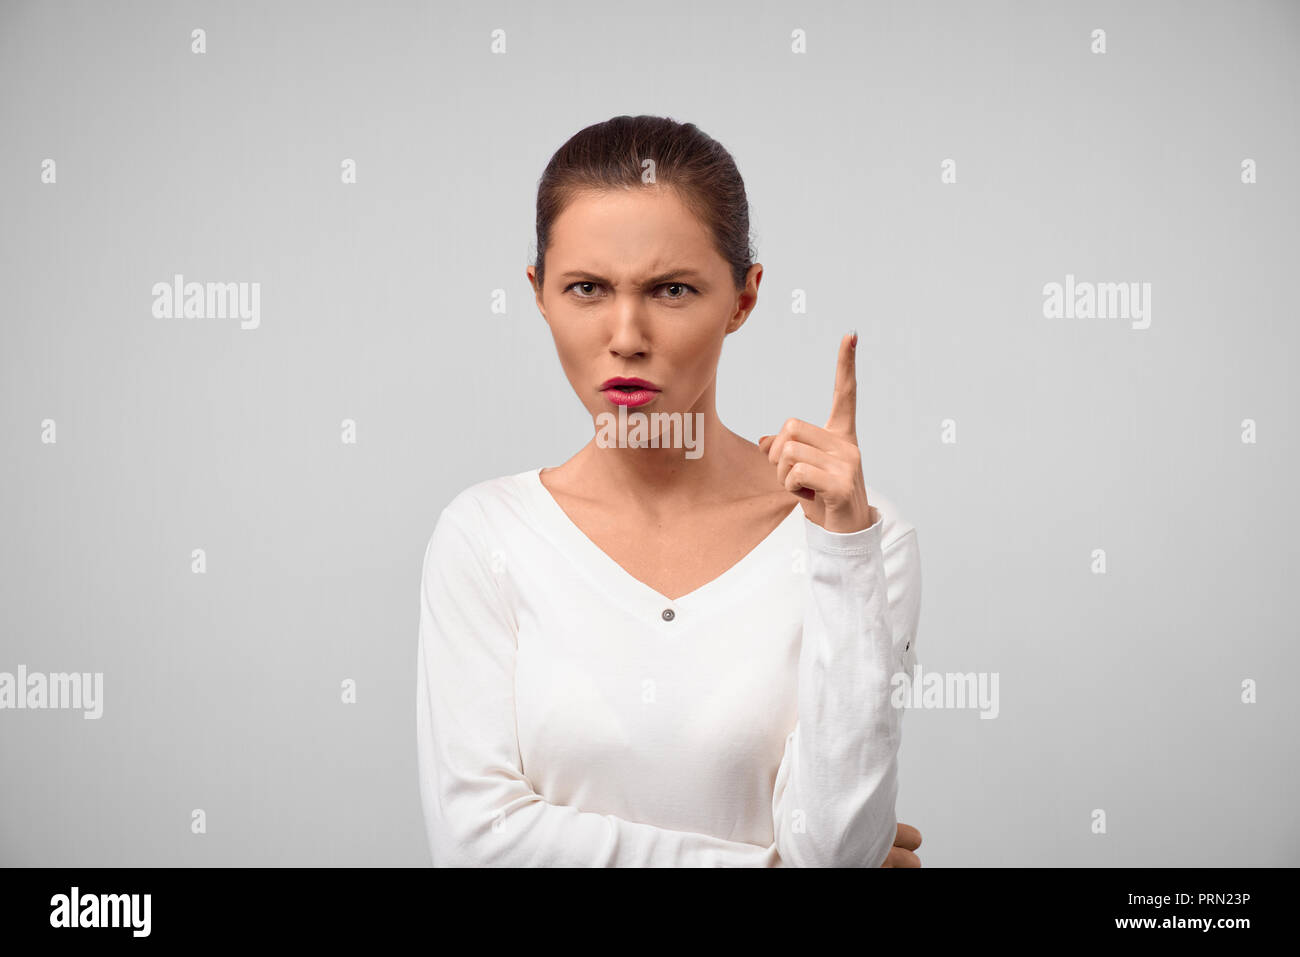 Portrait of unhappy Caucasian brunette woman boss having mad expression pointing her index finger up, looking angry and frowning. Serious female with  - Stock Image